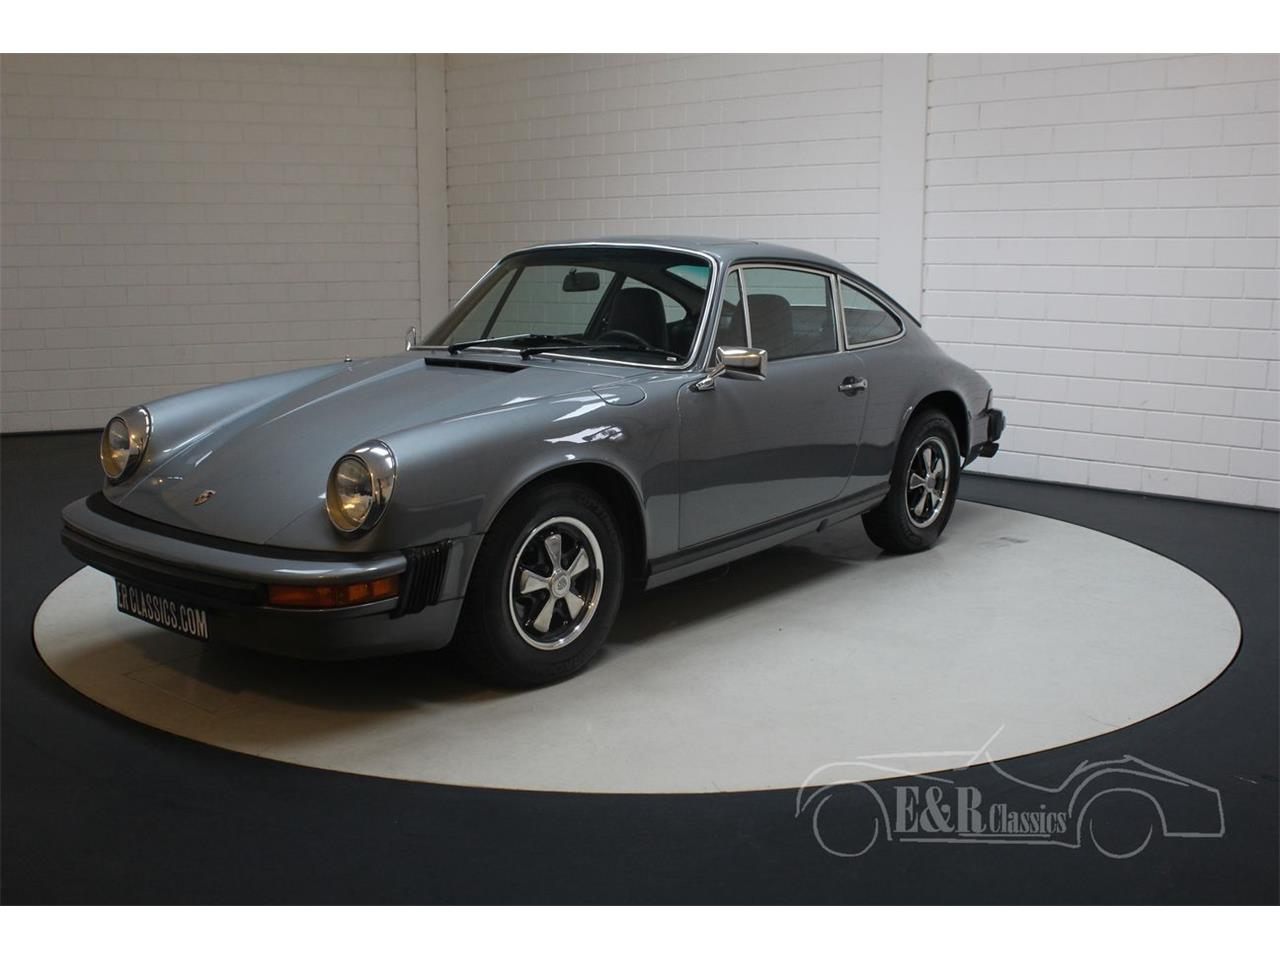 Large Picture of '76 Porsche 912E - $44,700.00 Offered by E & R Classics - Q66S